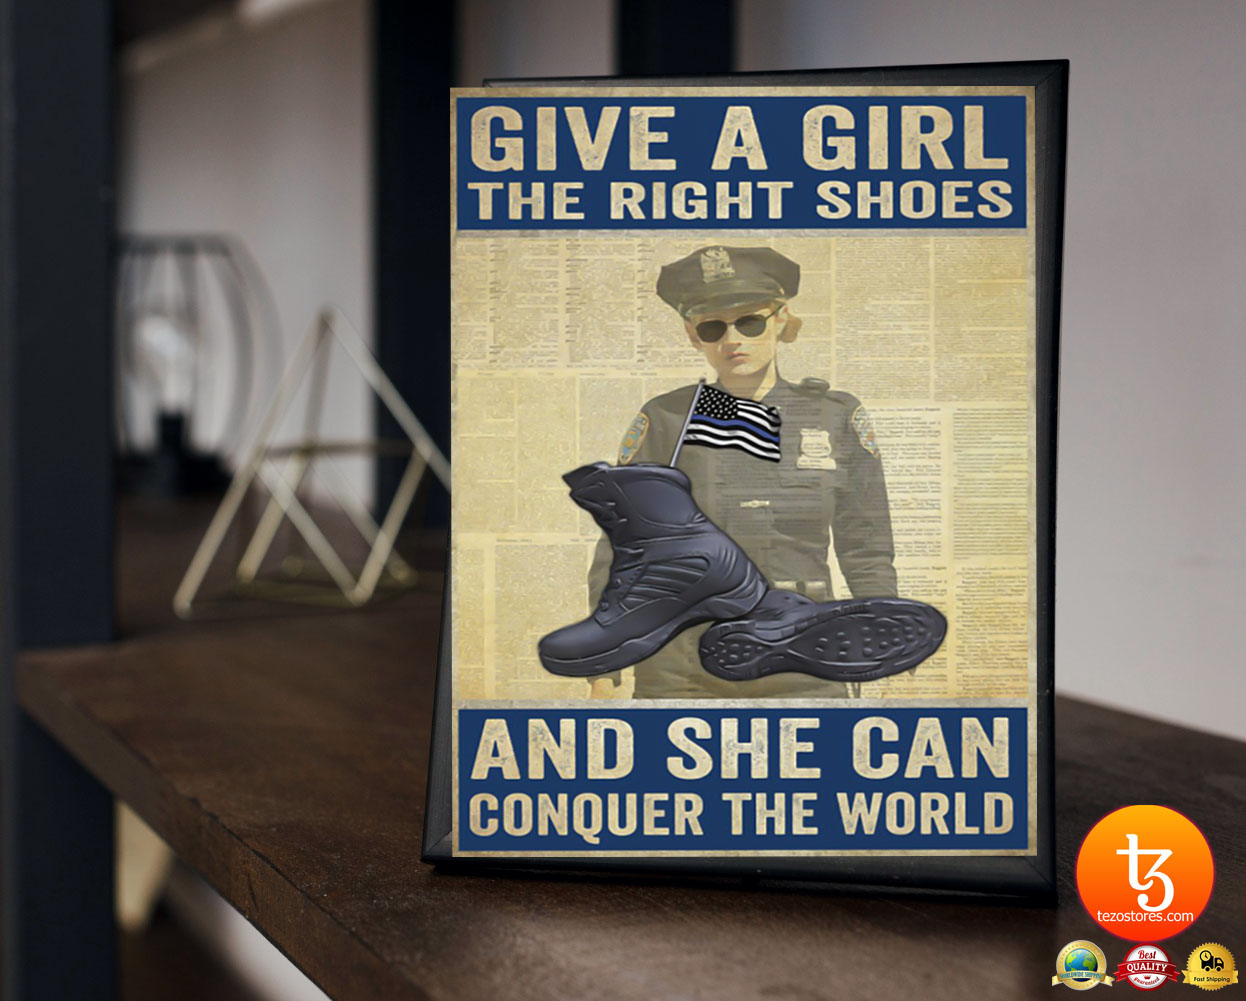 Police give a girl the right shoes and she can conquer the world poster